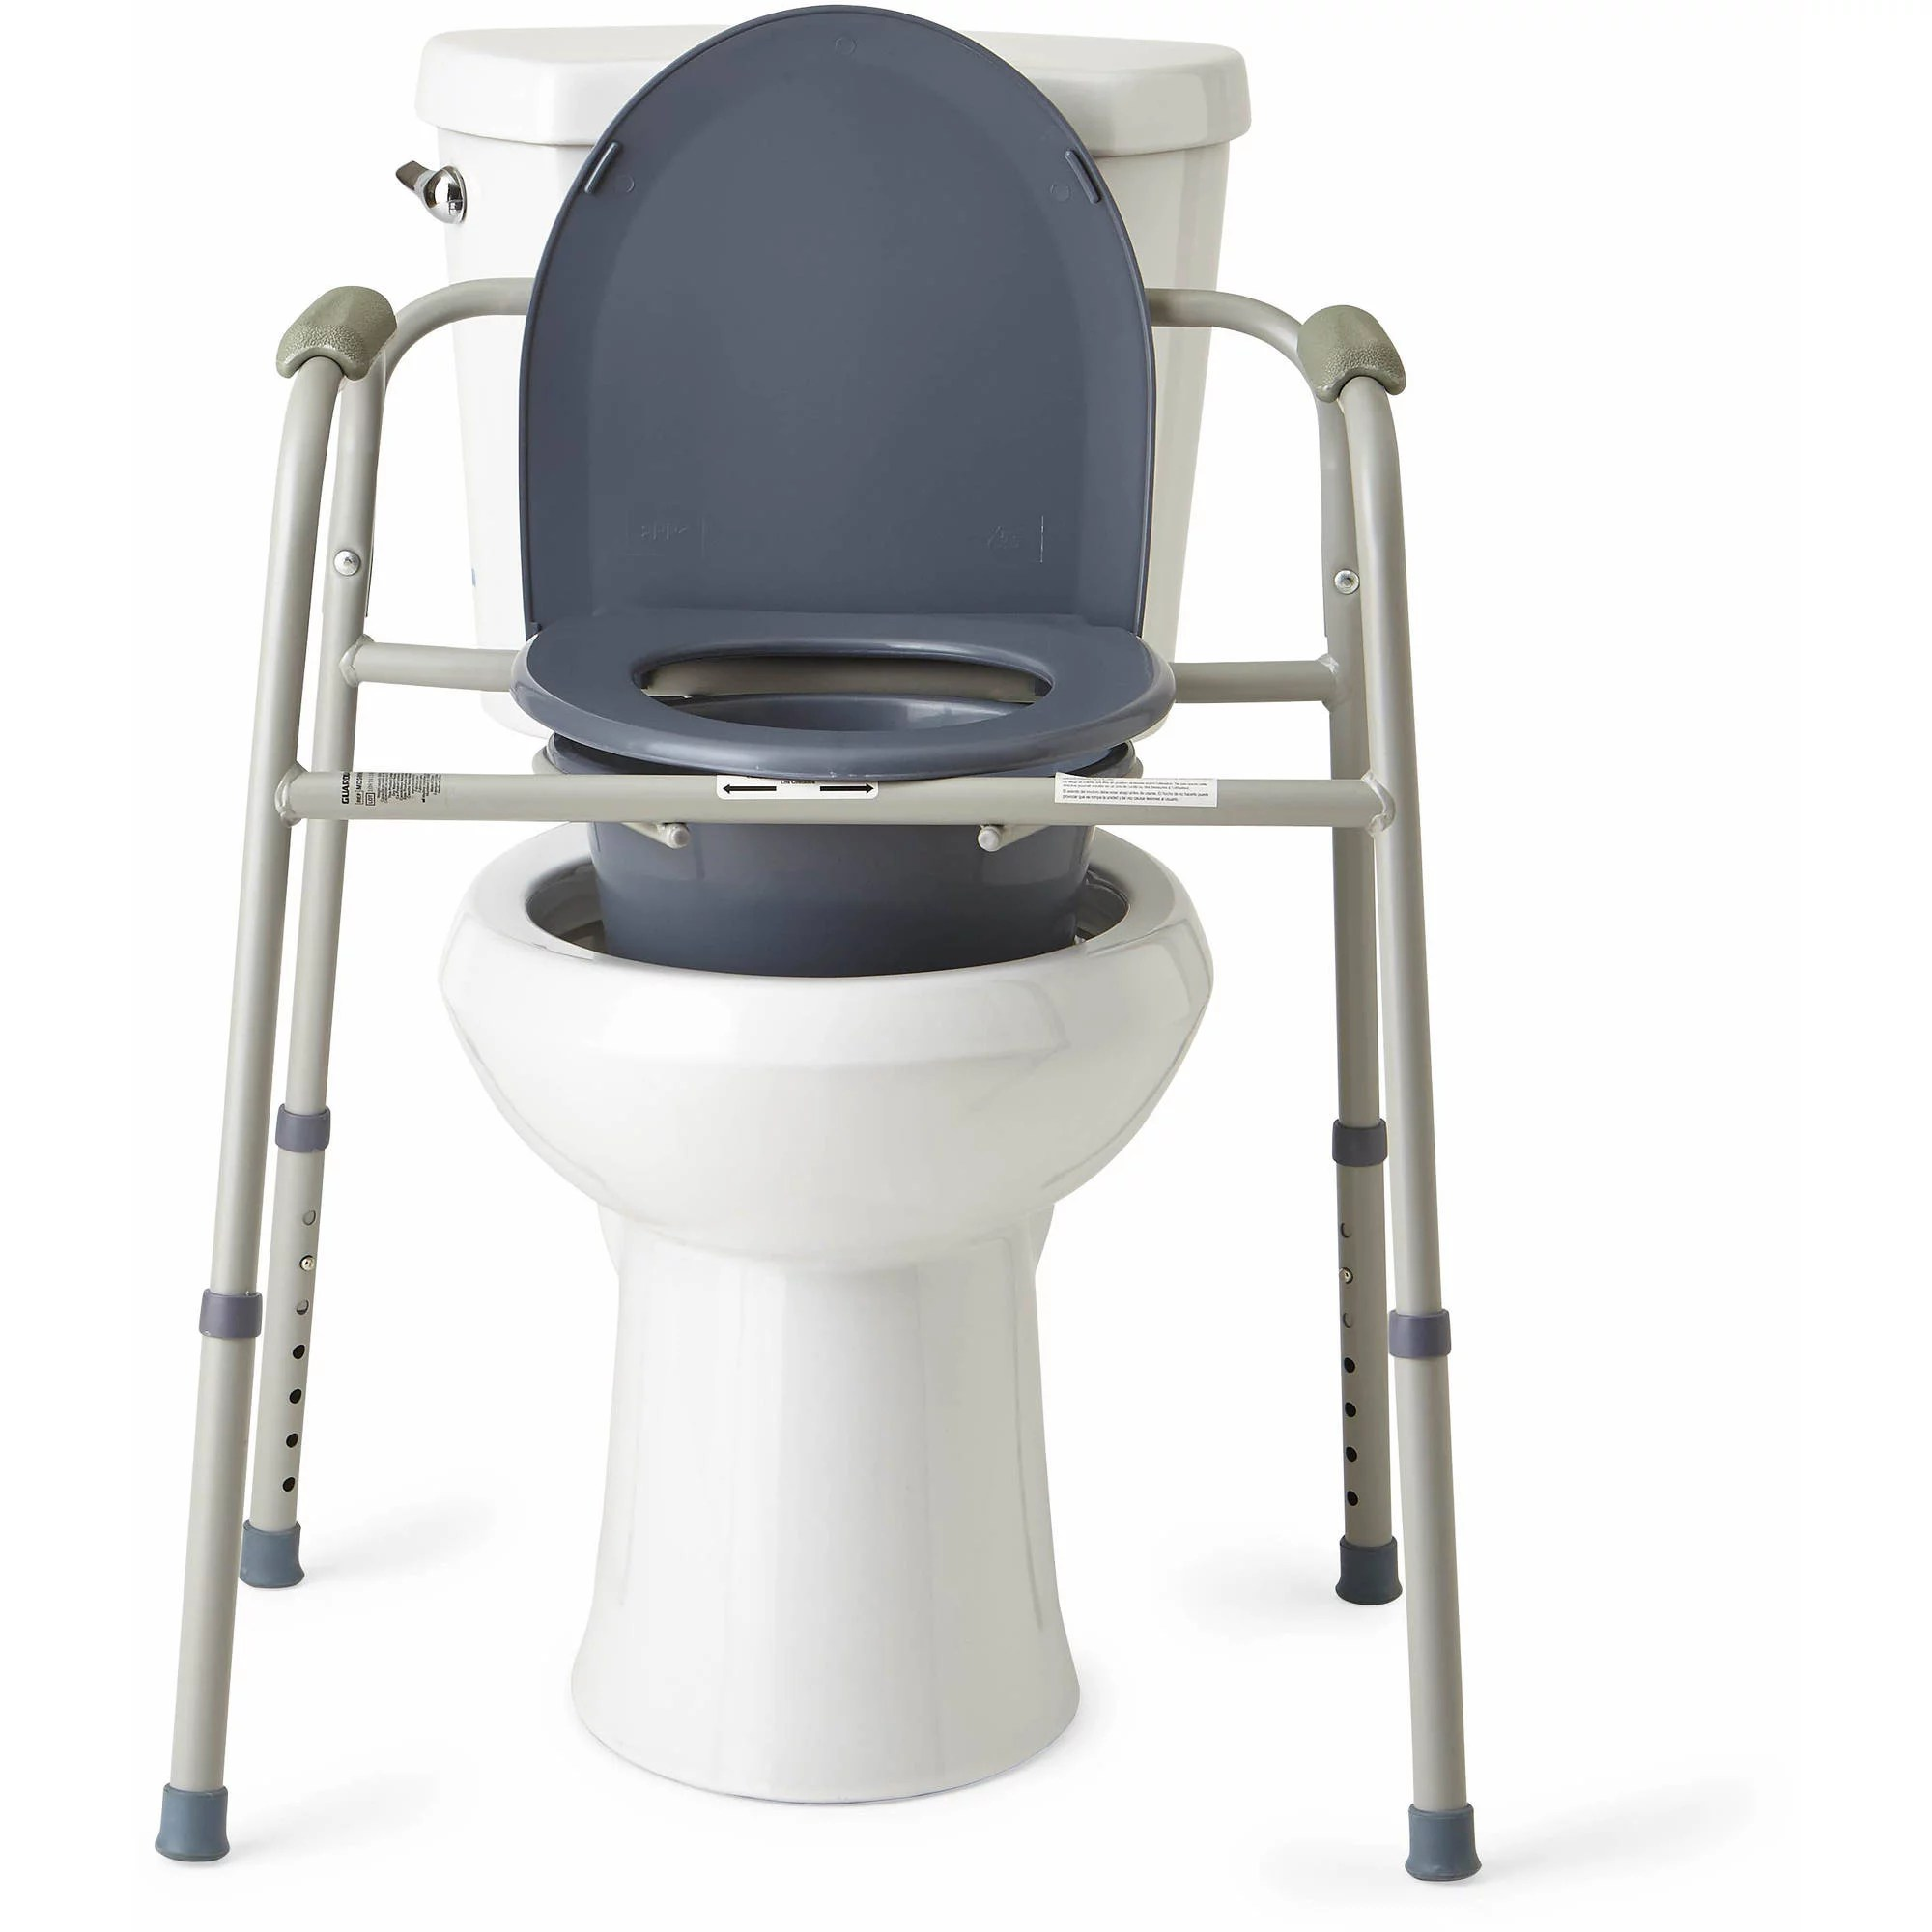 Bedside Commode Chair Steel Bedside Toilet Commode Handicap Assist Grab Bars Lid